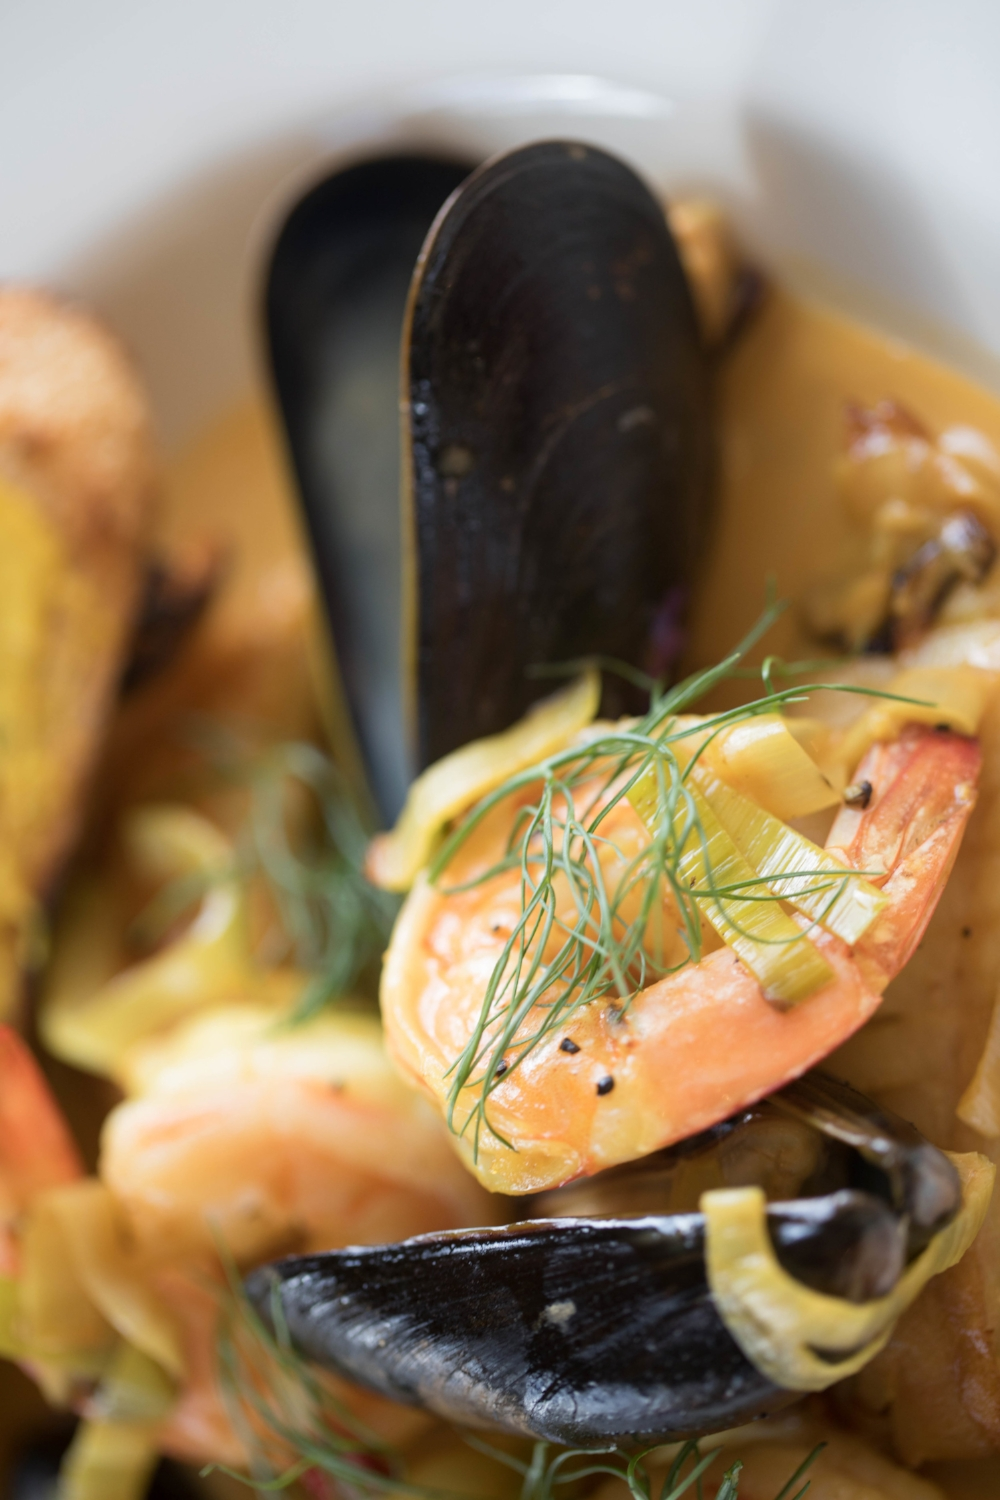 Jimena-Peck-Denver-Food-Photographer-The-Emporium-Kitchen-And-Wine-Market-Seafood-Close-Up